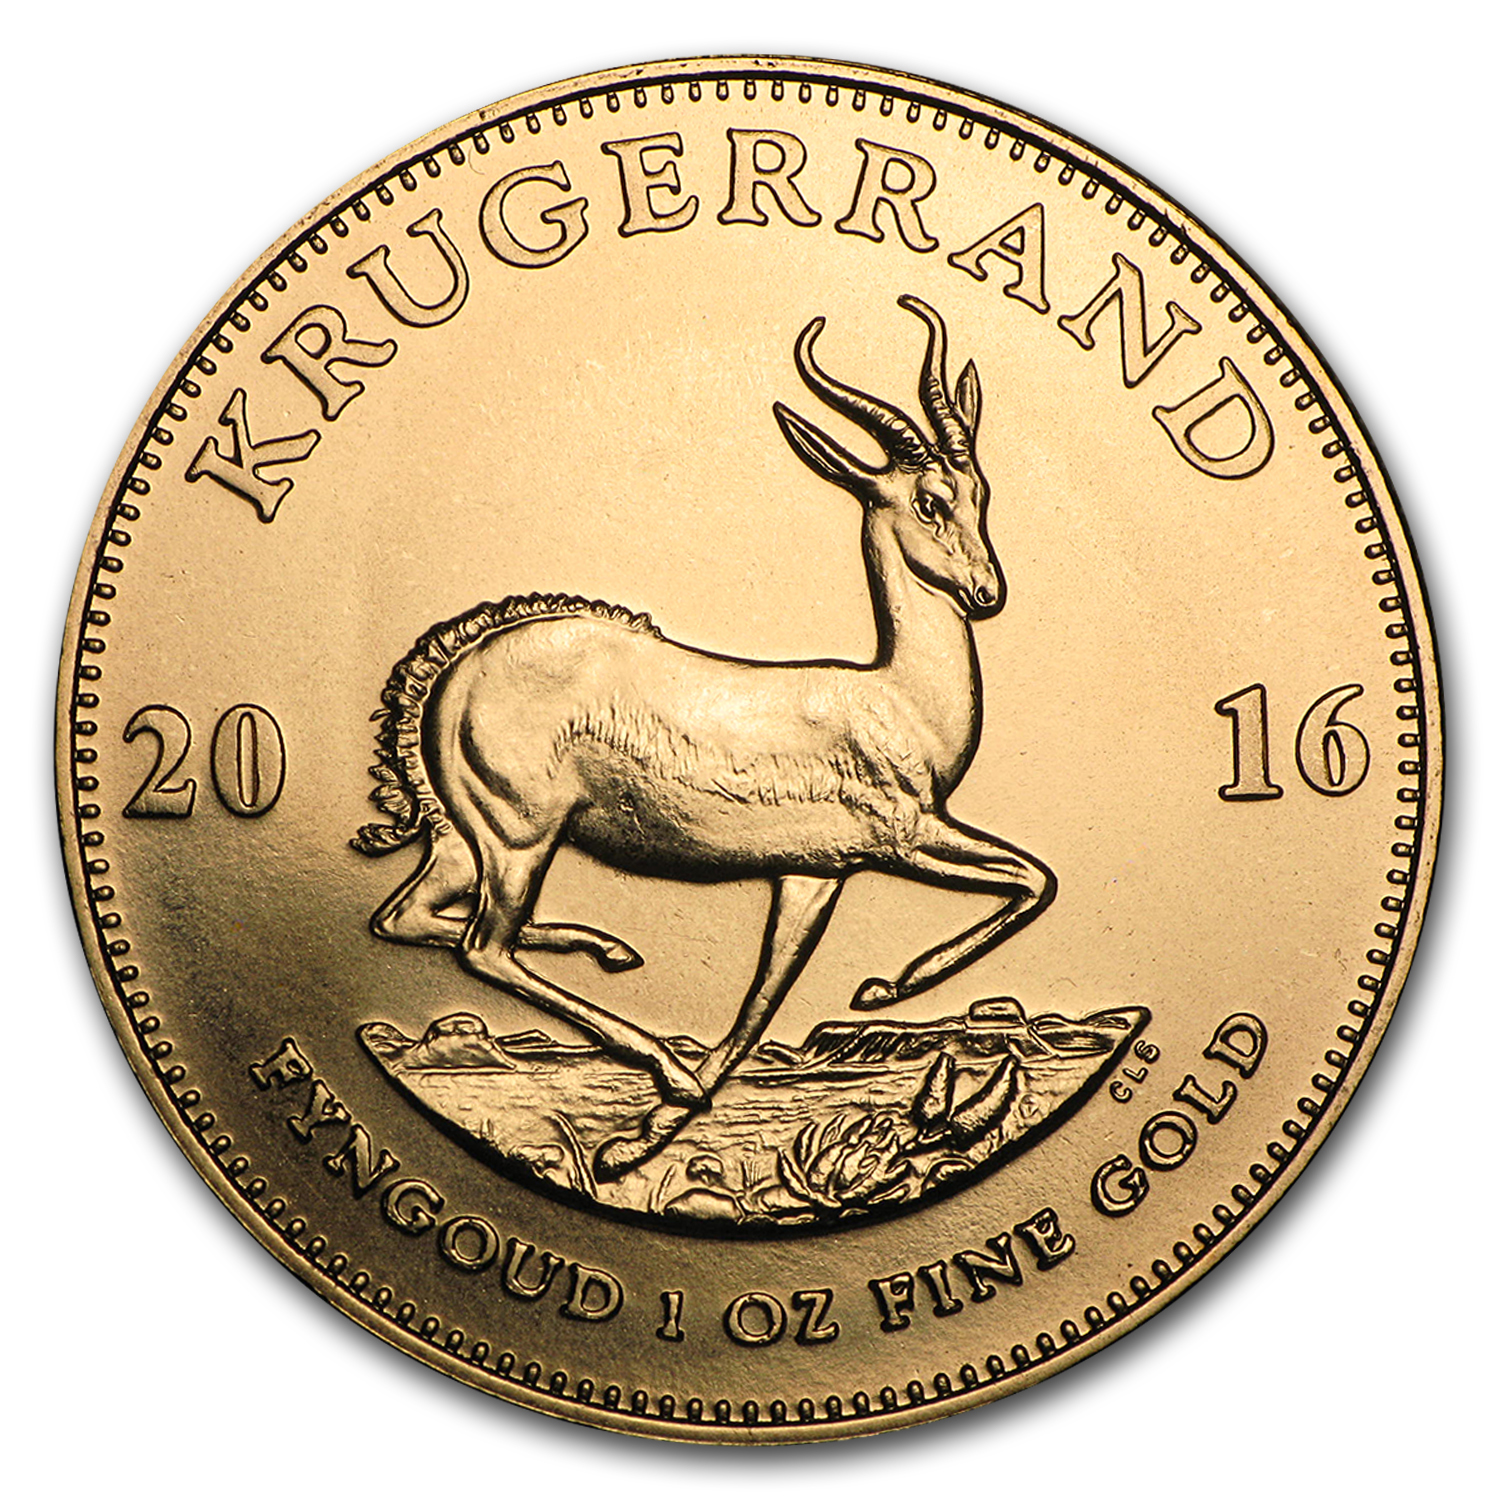 2016 South Africa 1 oz Gold Krugerrand